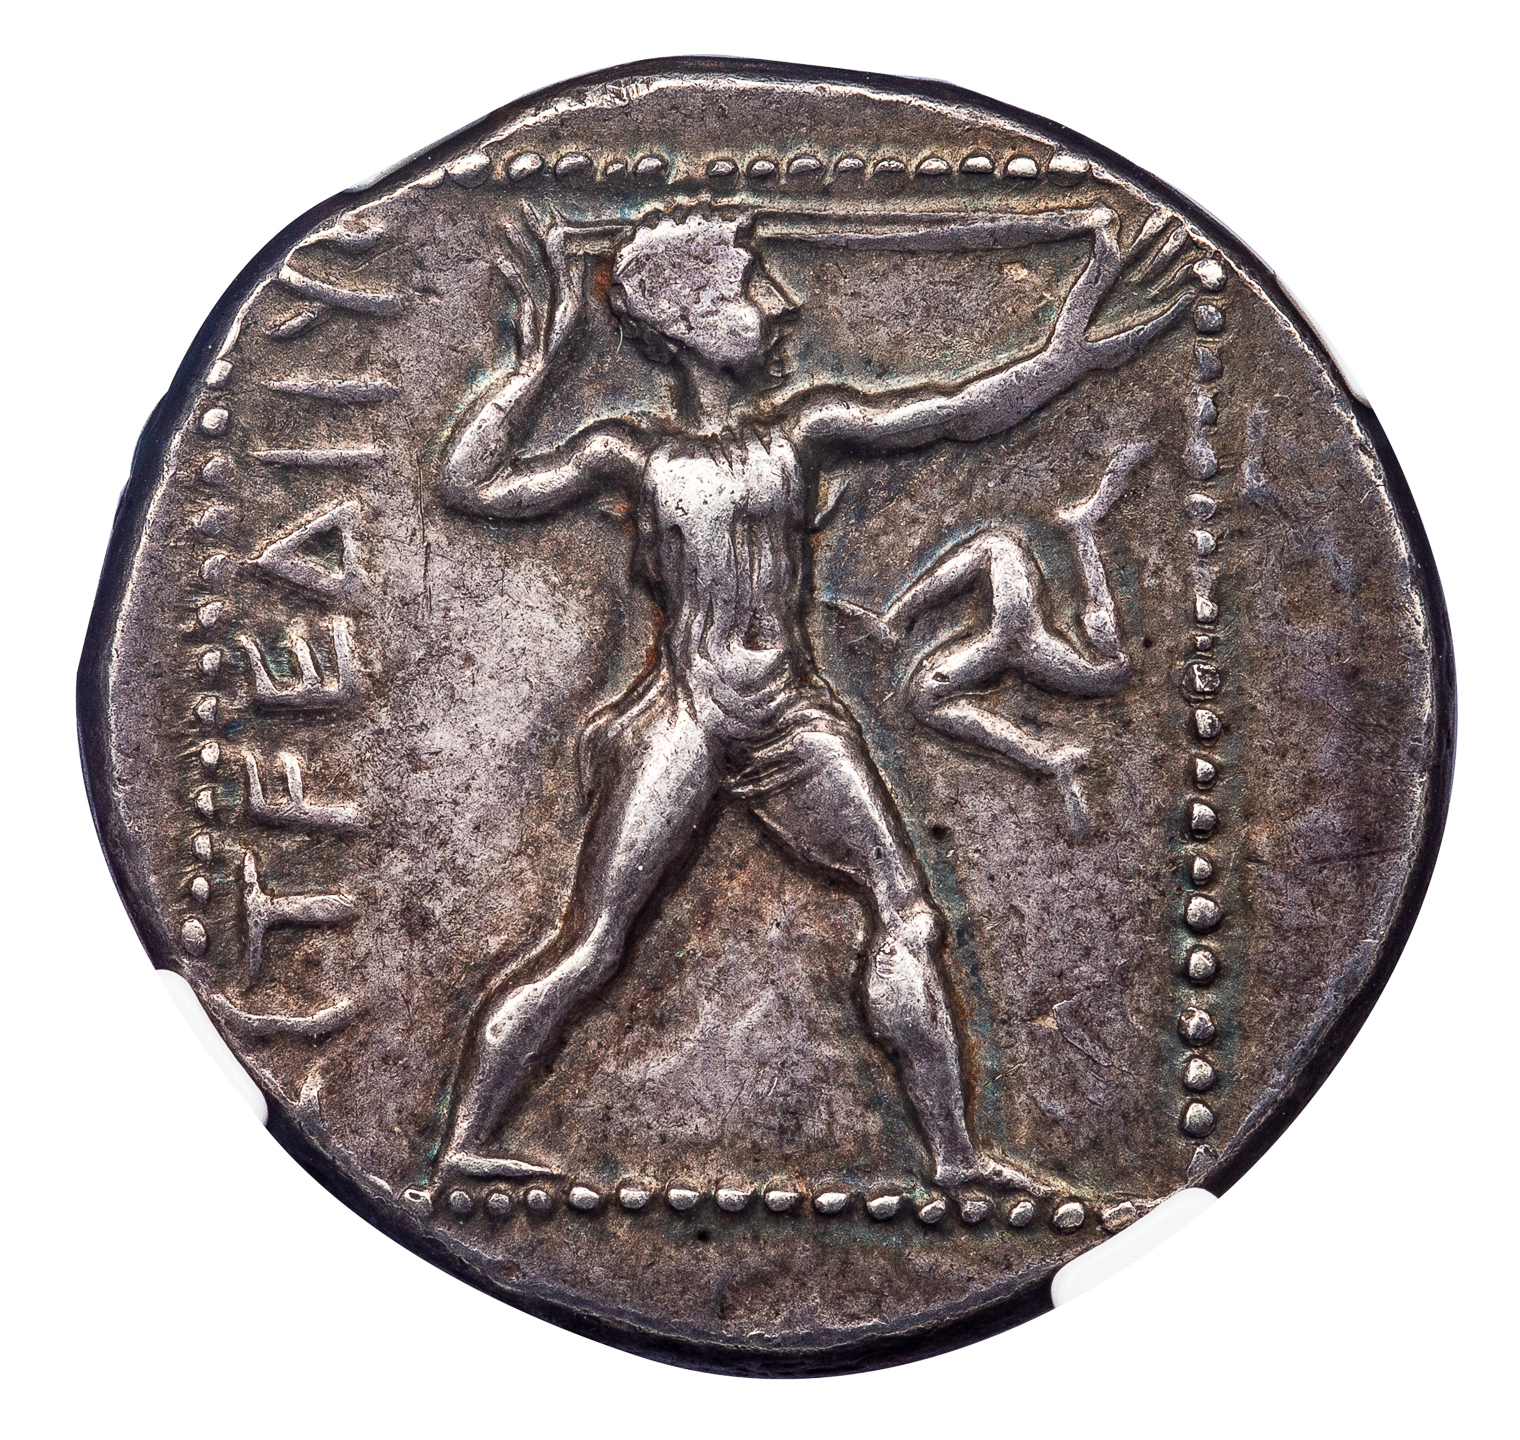 ASPENDOS SILVER STATER - COUNTERMARKED EXAMPLE OF